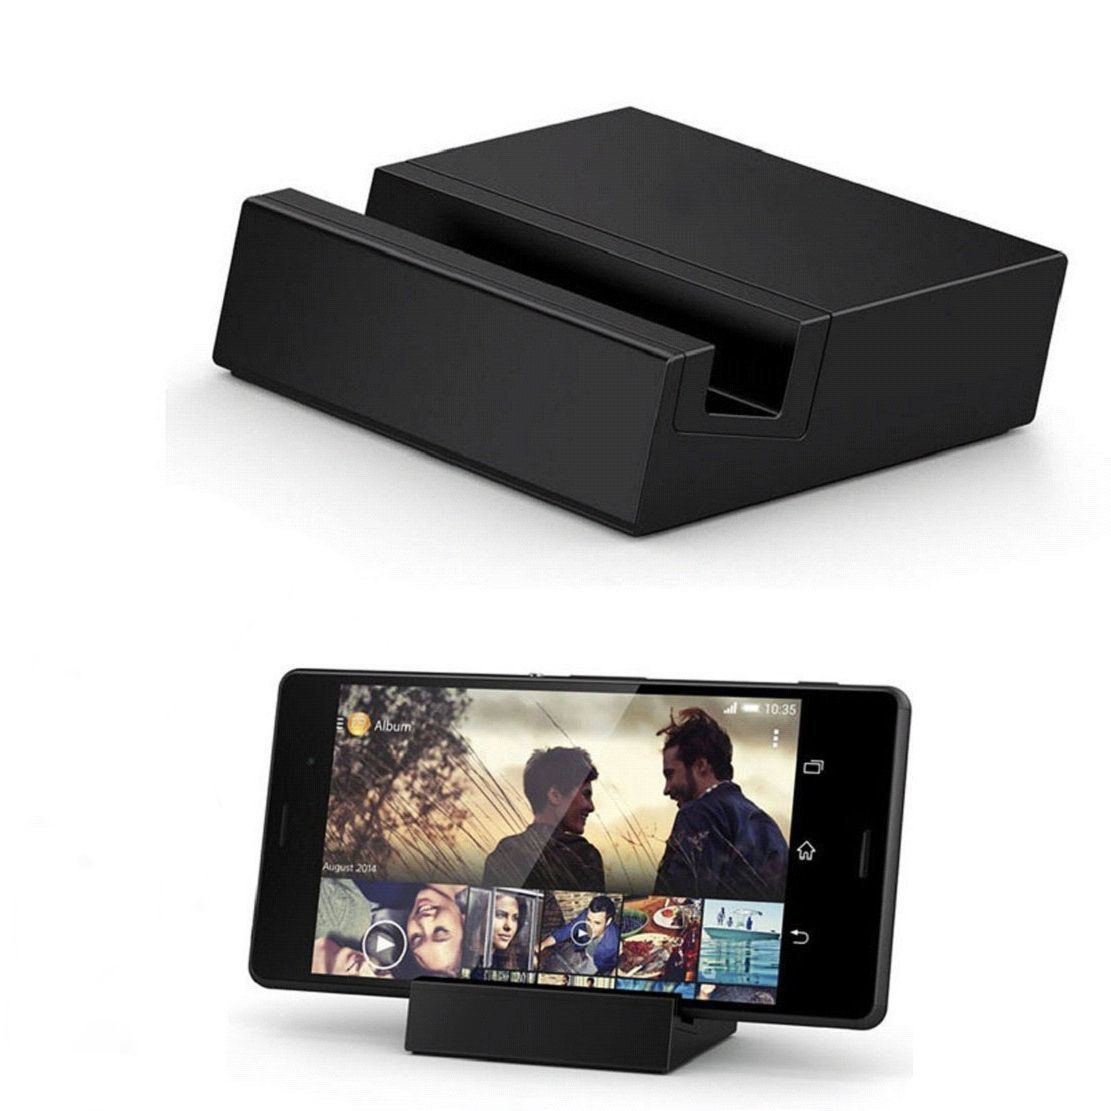 ���-������� Magnetic Charging Dock ��� Sony Xperia Z3/Z3 Compact, ������